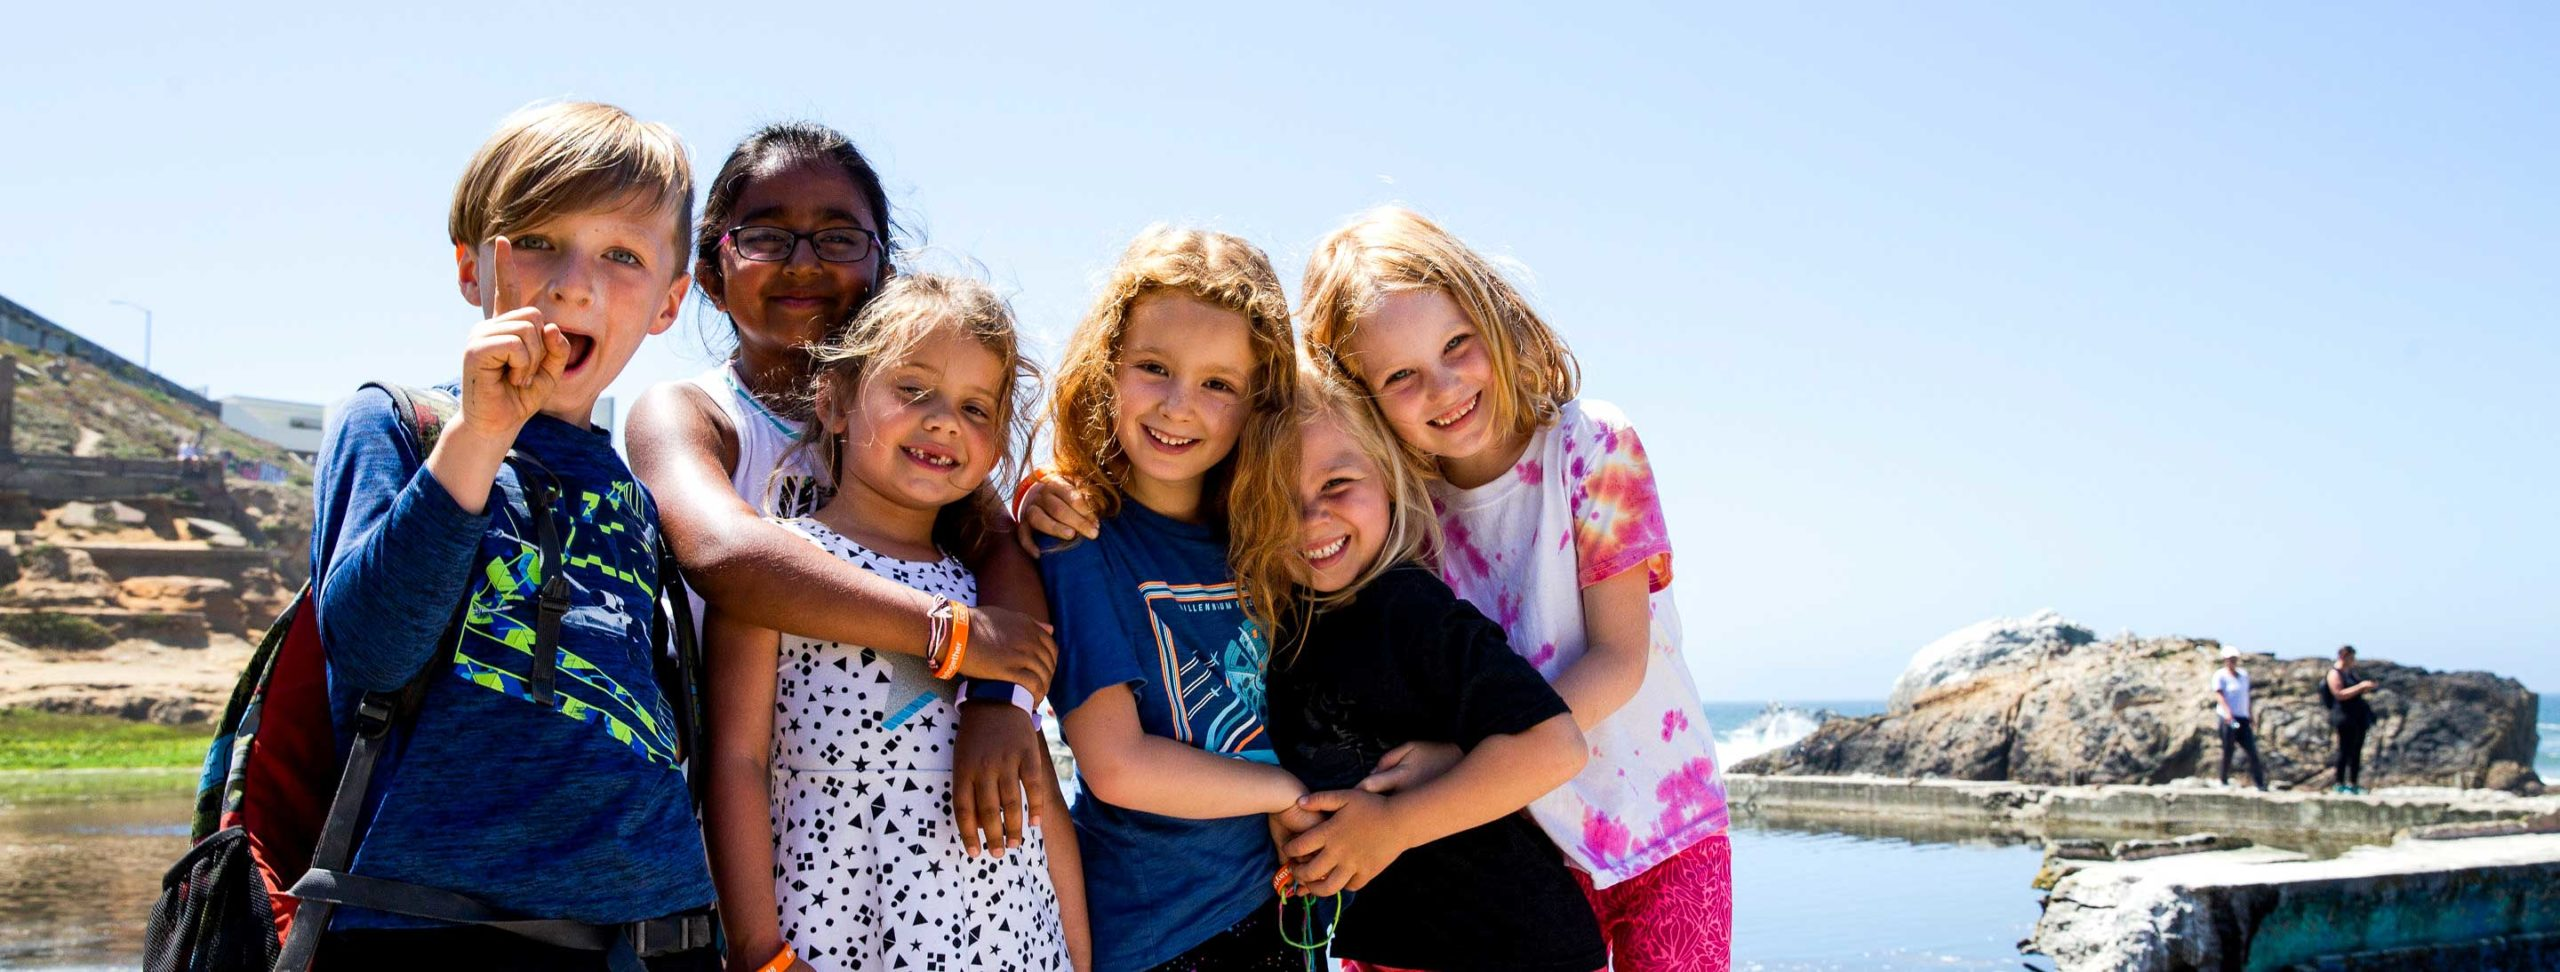 Group of kids hug each other while posing for camera